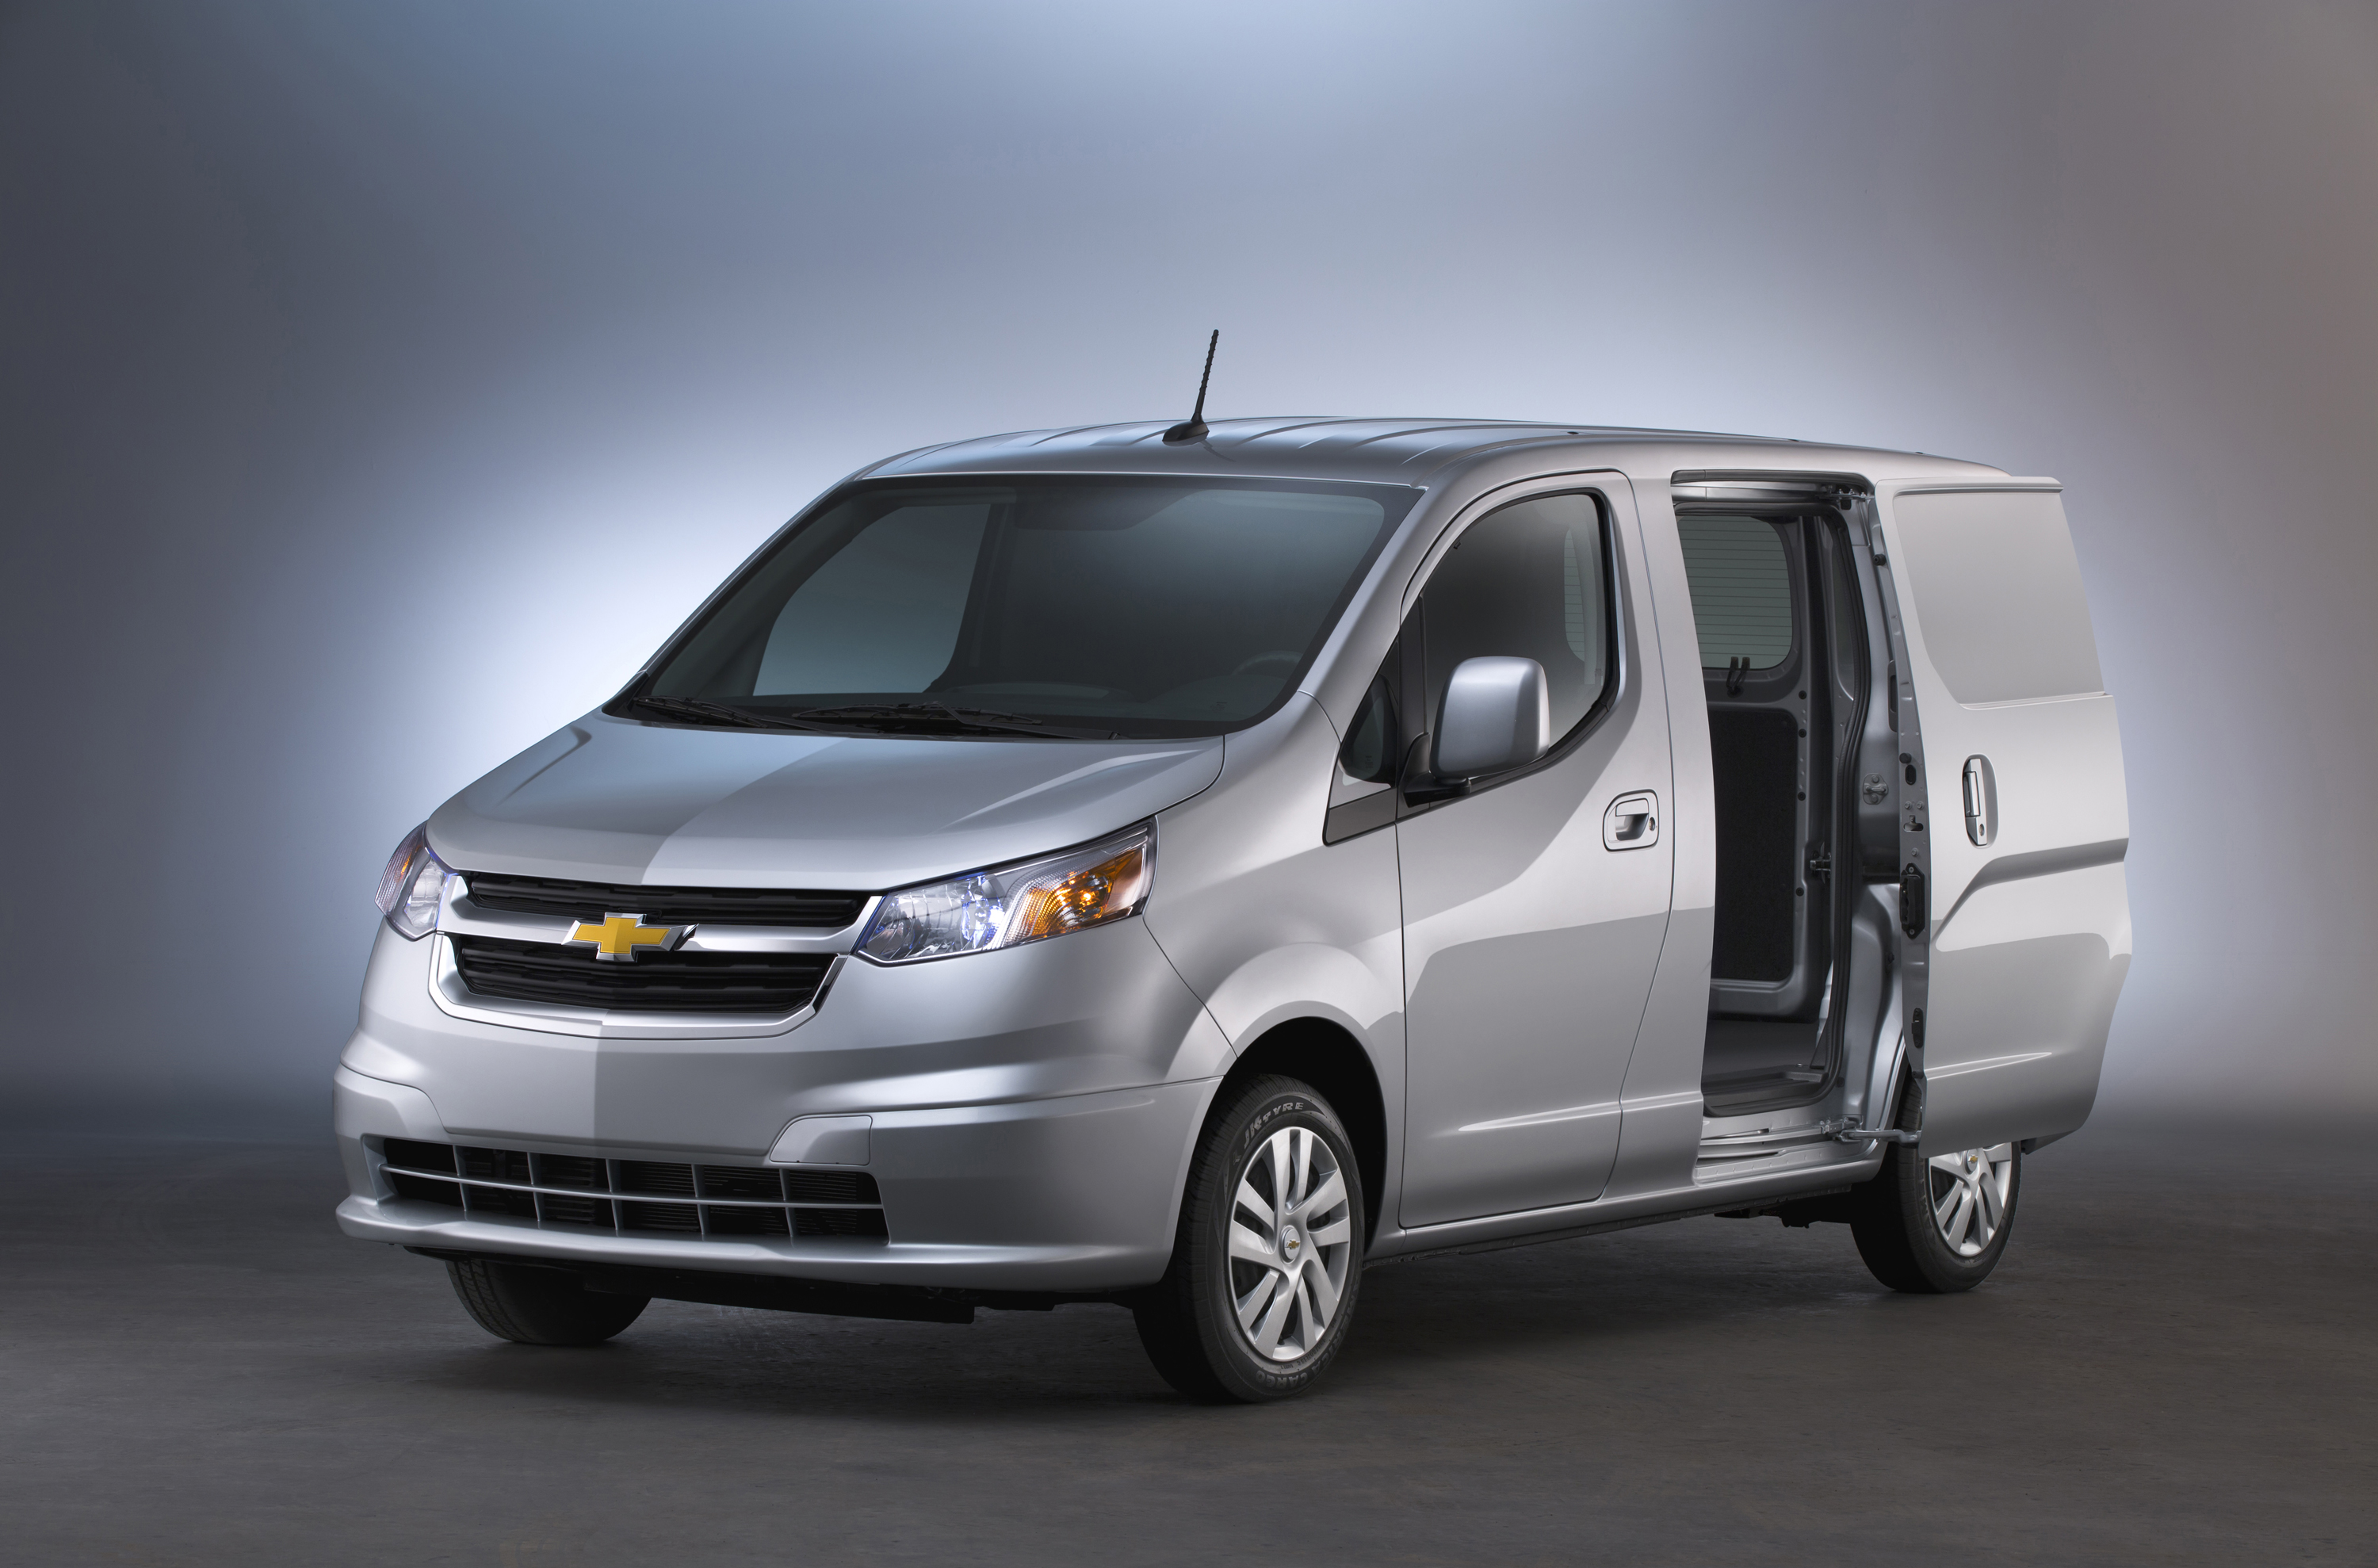 2016 Chevrolet City Express #2